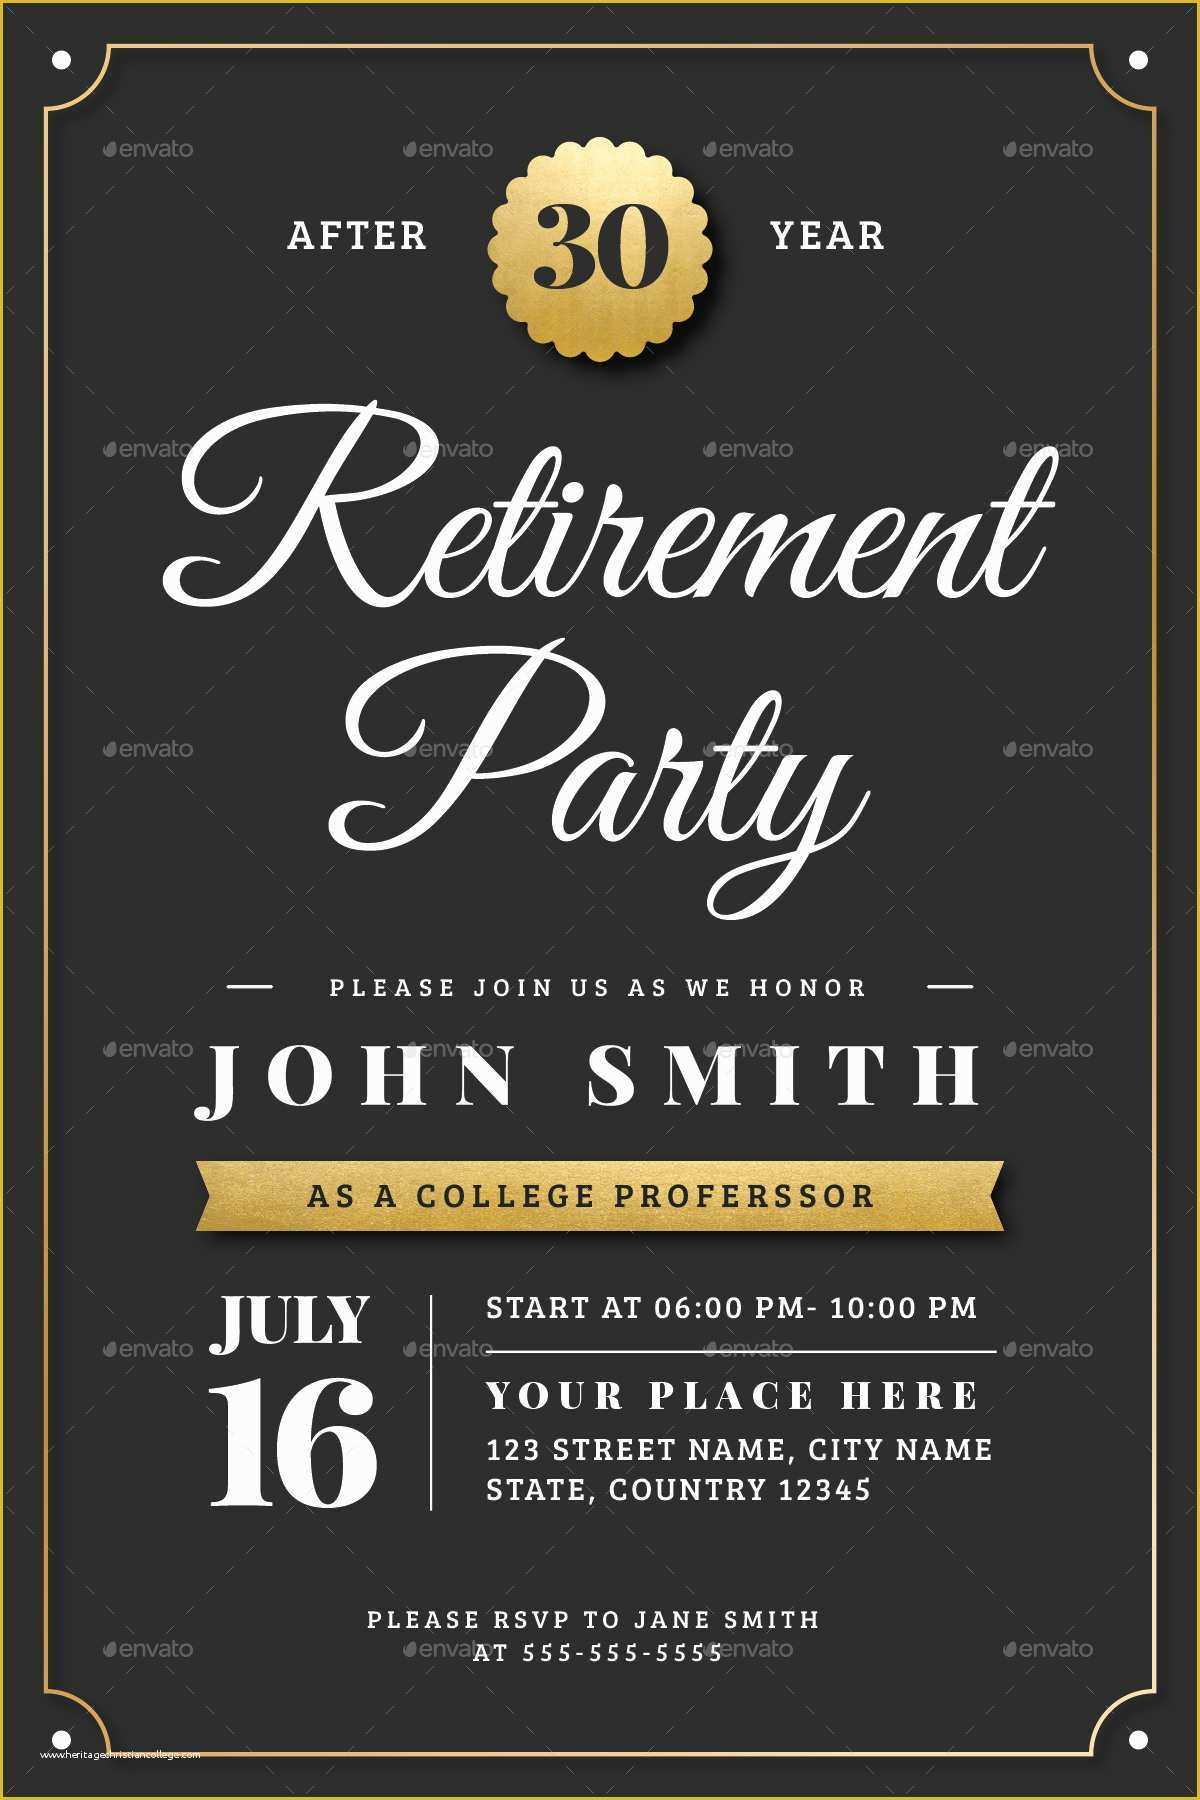 032 Retirement Party Announcement Template Free Of Gold With Regard To Free Retirement Templates For Flyers